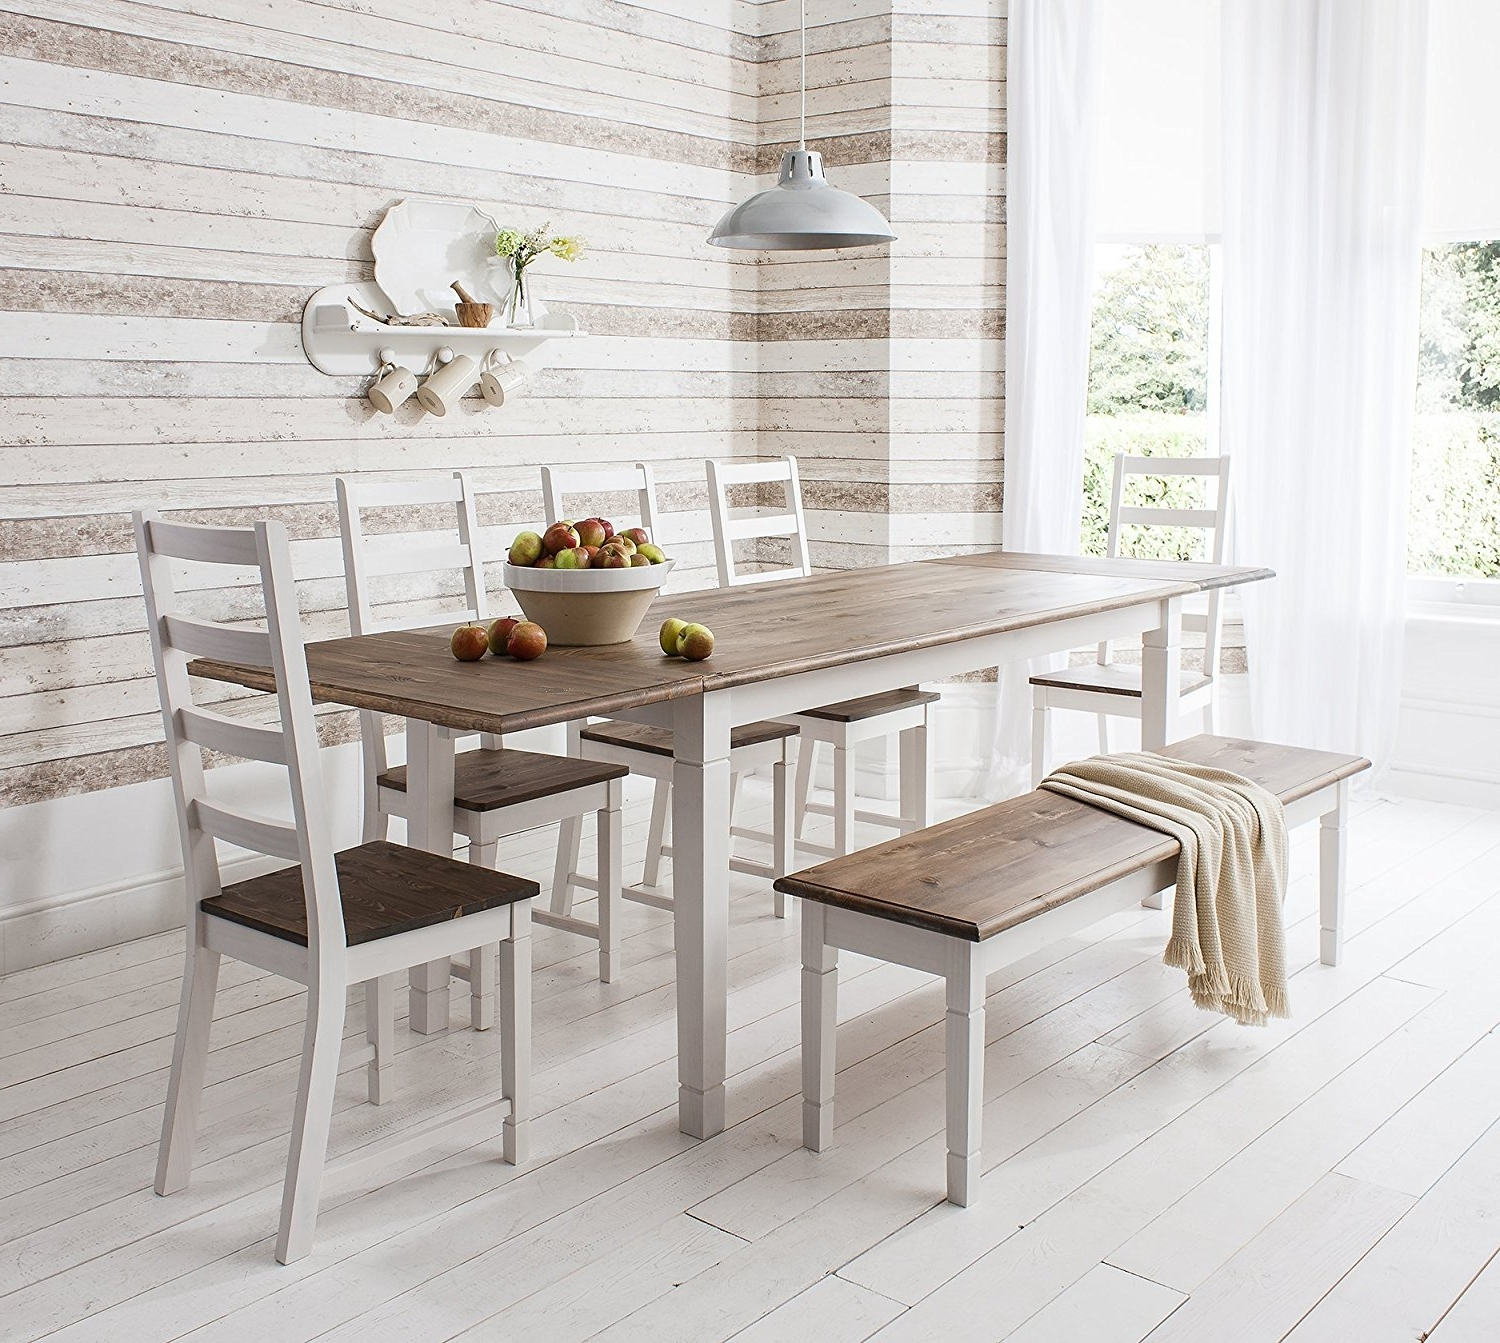 8 Seater Dark Wood Dining Table And Chairs – Dining Tables Ideas With Current Extendable Dining Tables With 8 Seats (Gallery 24 of 25)